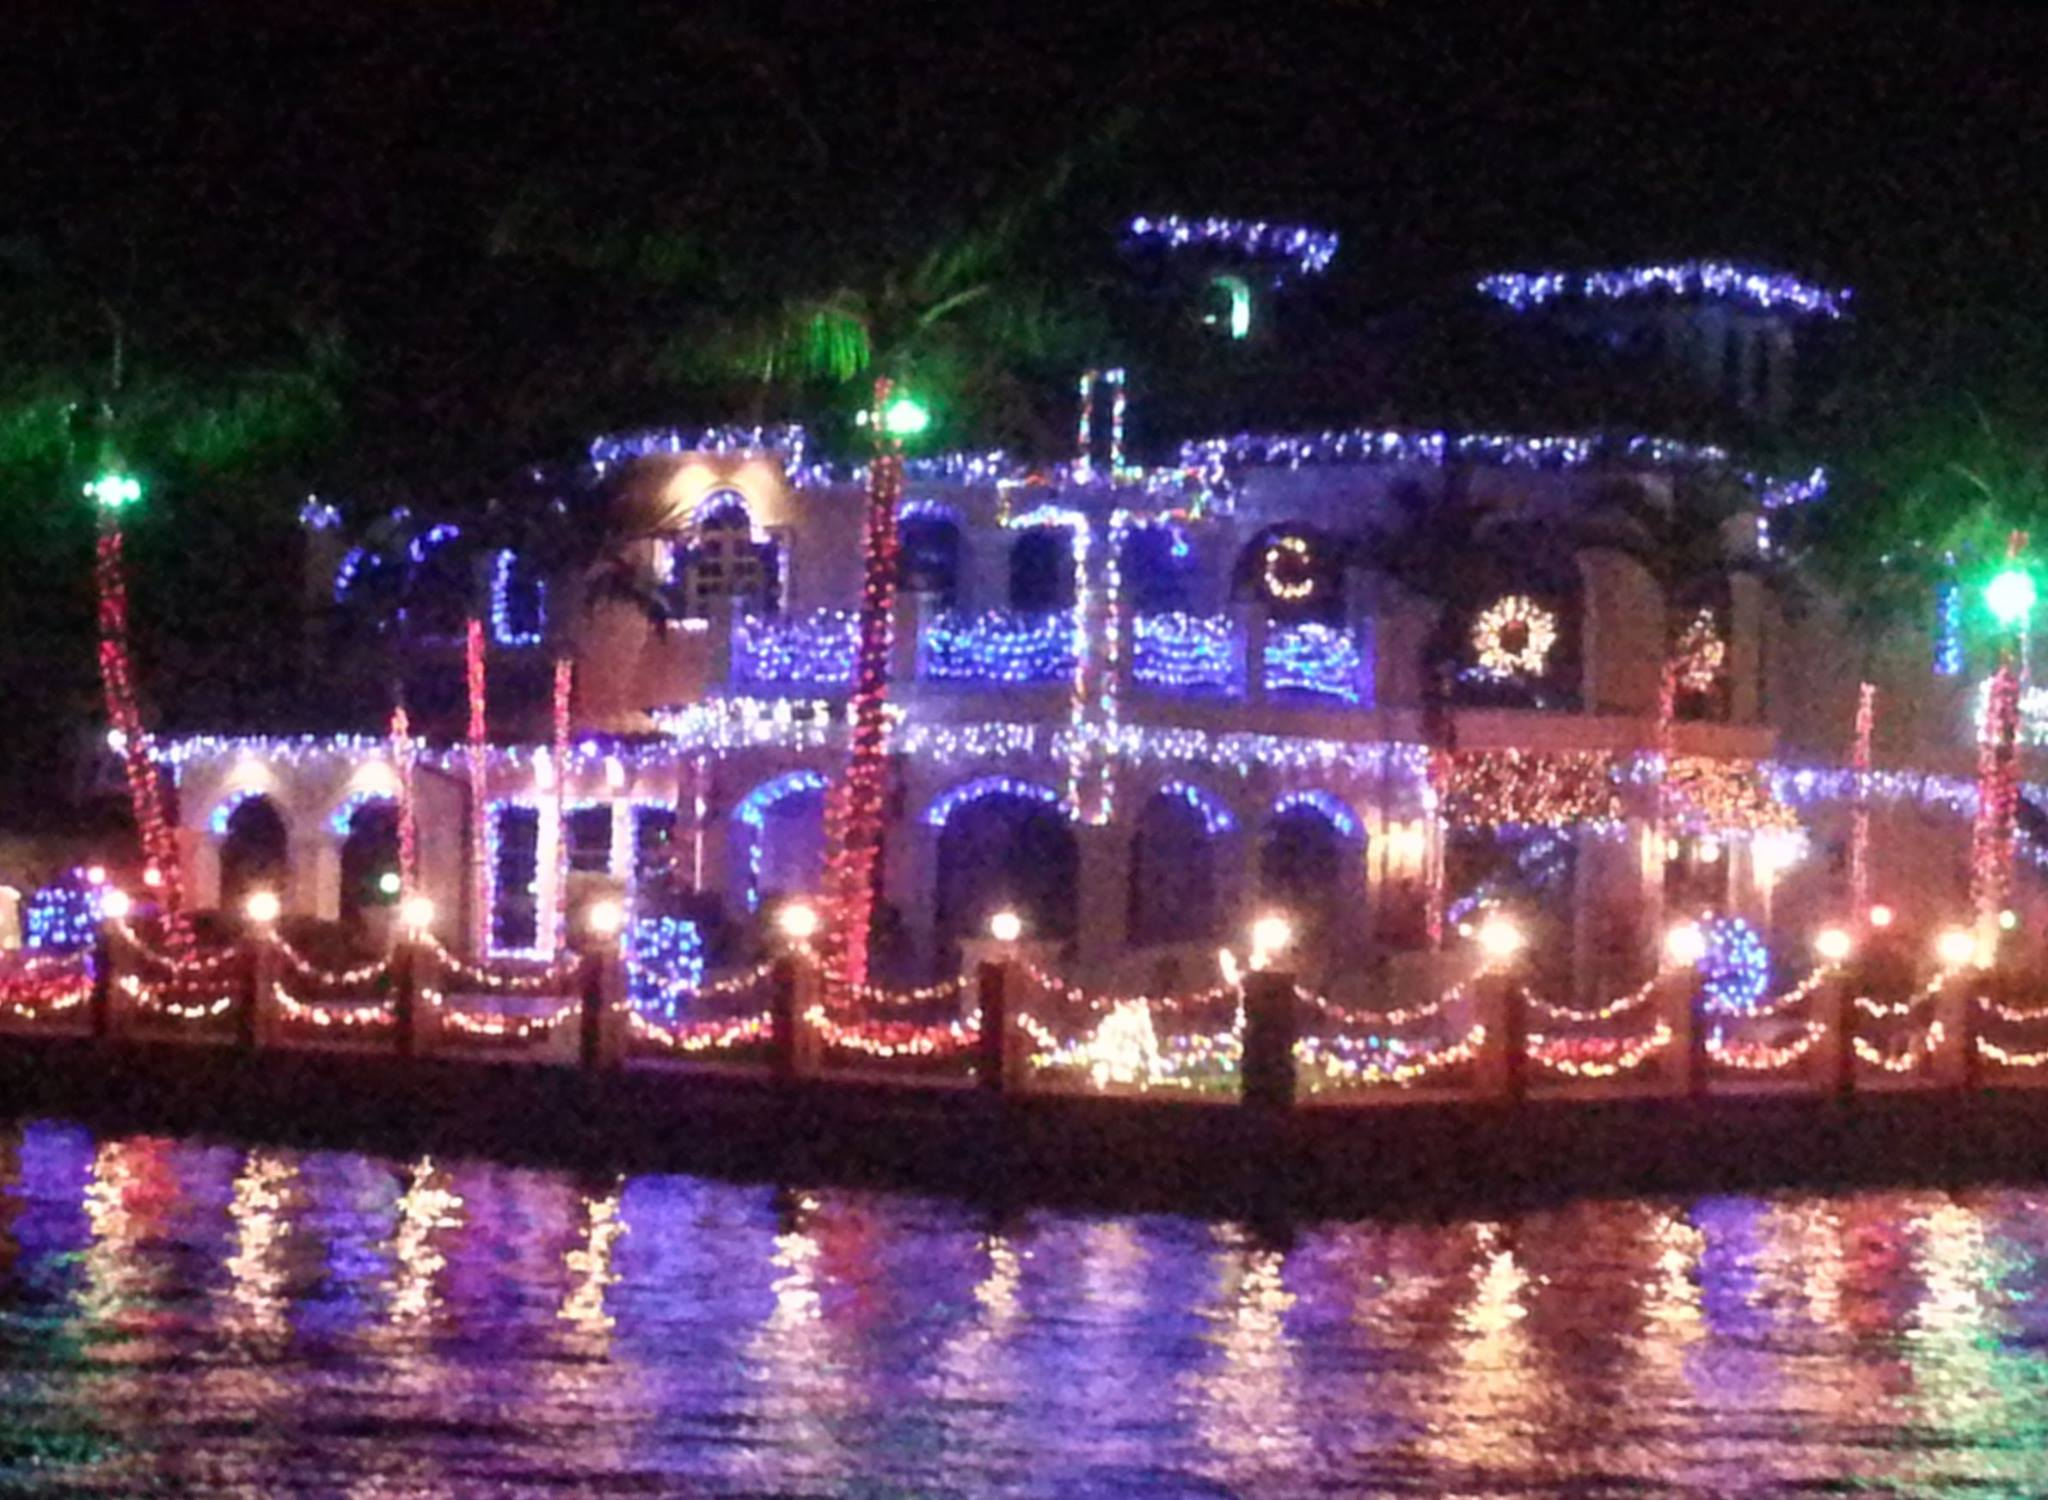 Water Taxi's Iconic Holiday Lights Tour Returns for 2016 Holiday Season